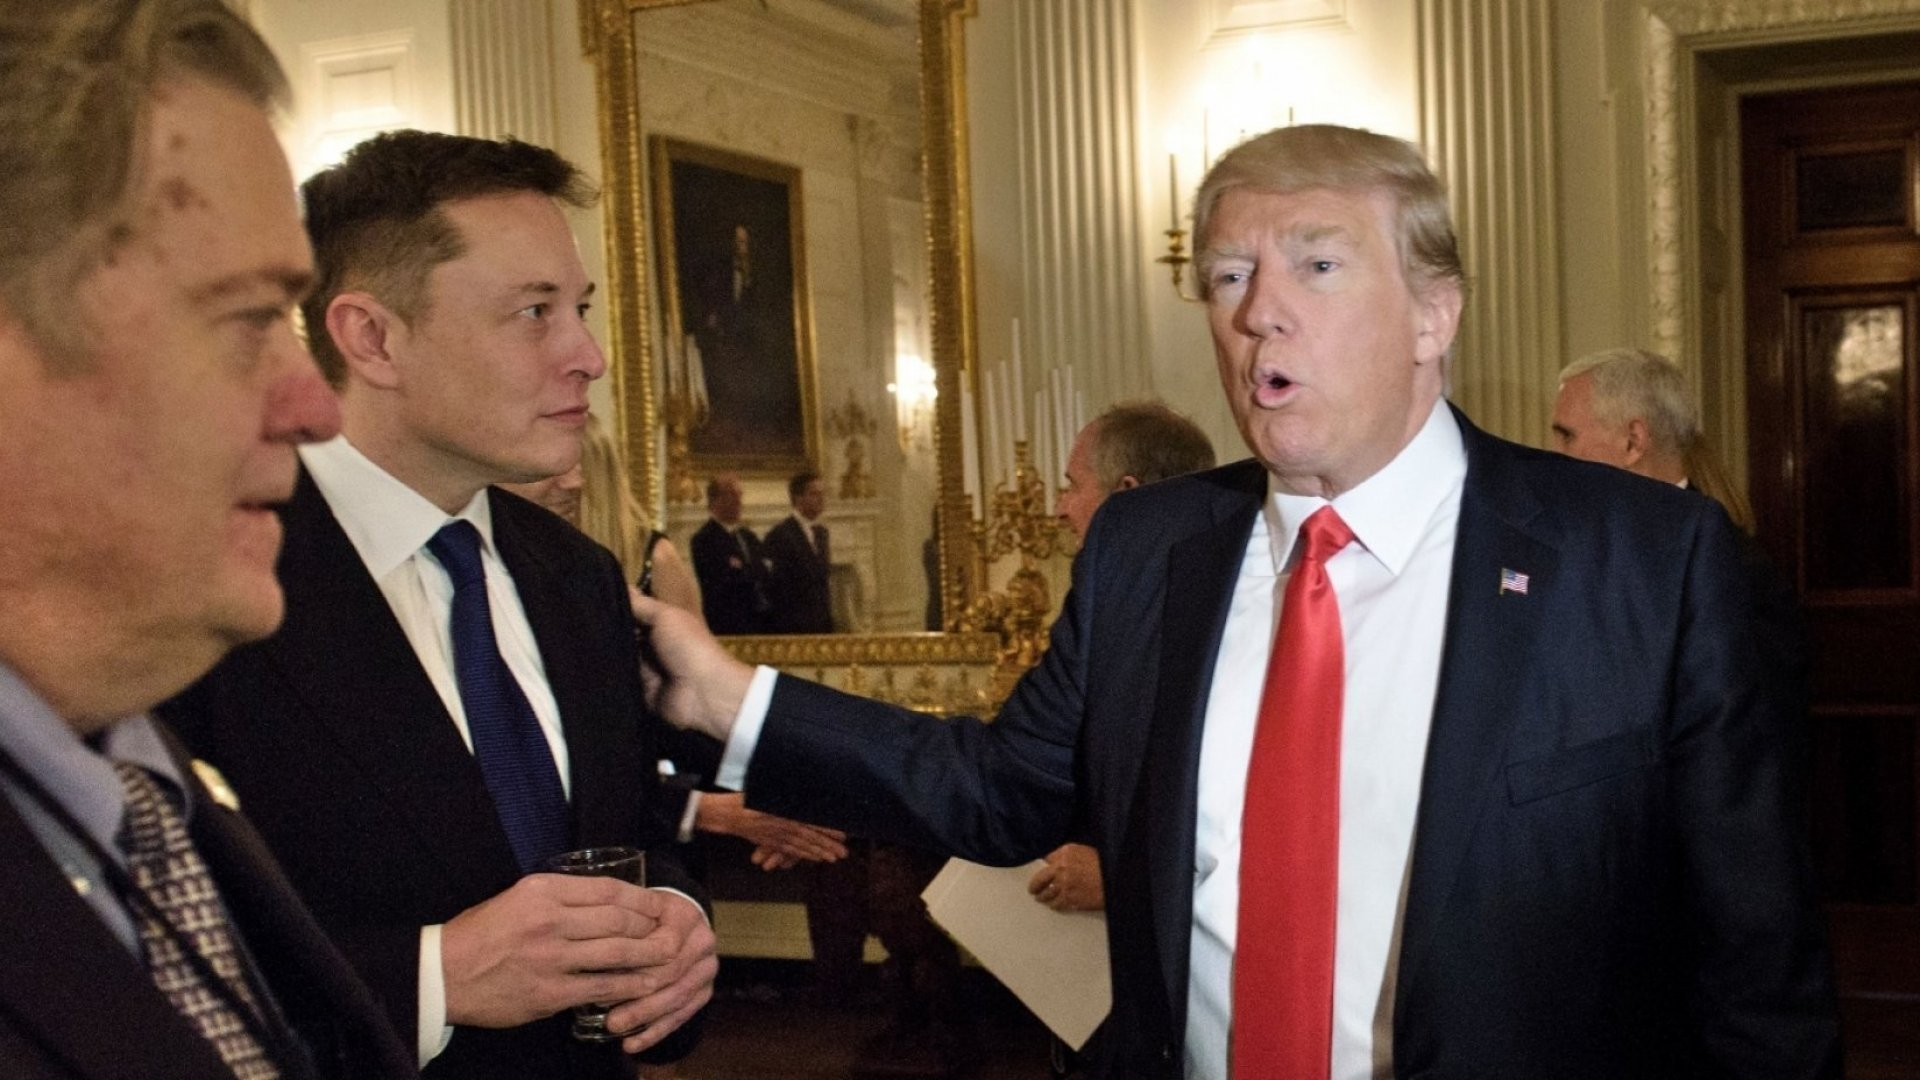 President Trump greets Elon Musk, SpaceX and Tesla CEO, before a White House policy and strategy forum with executives on February 3.